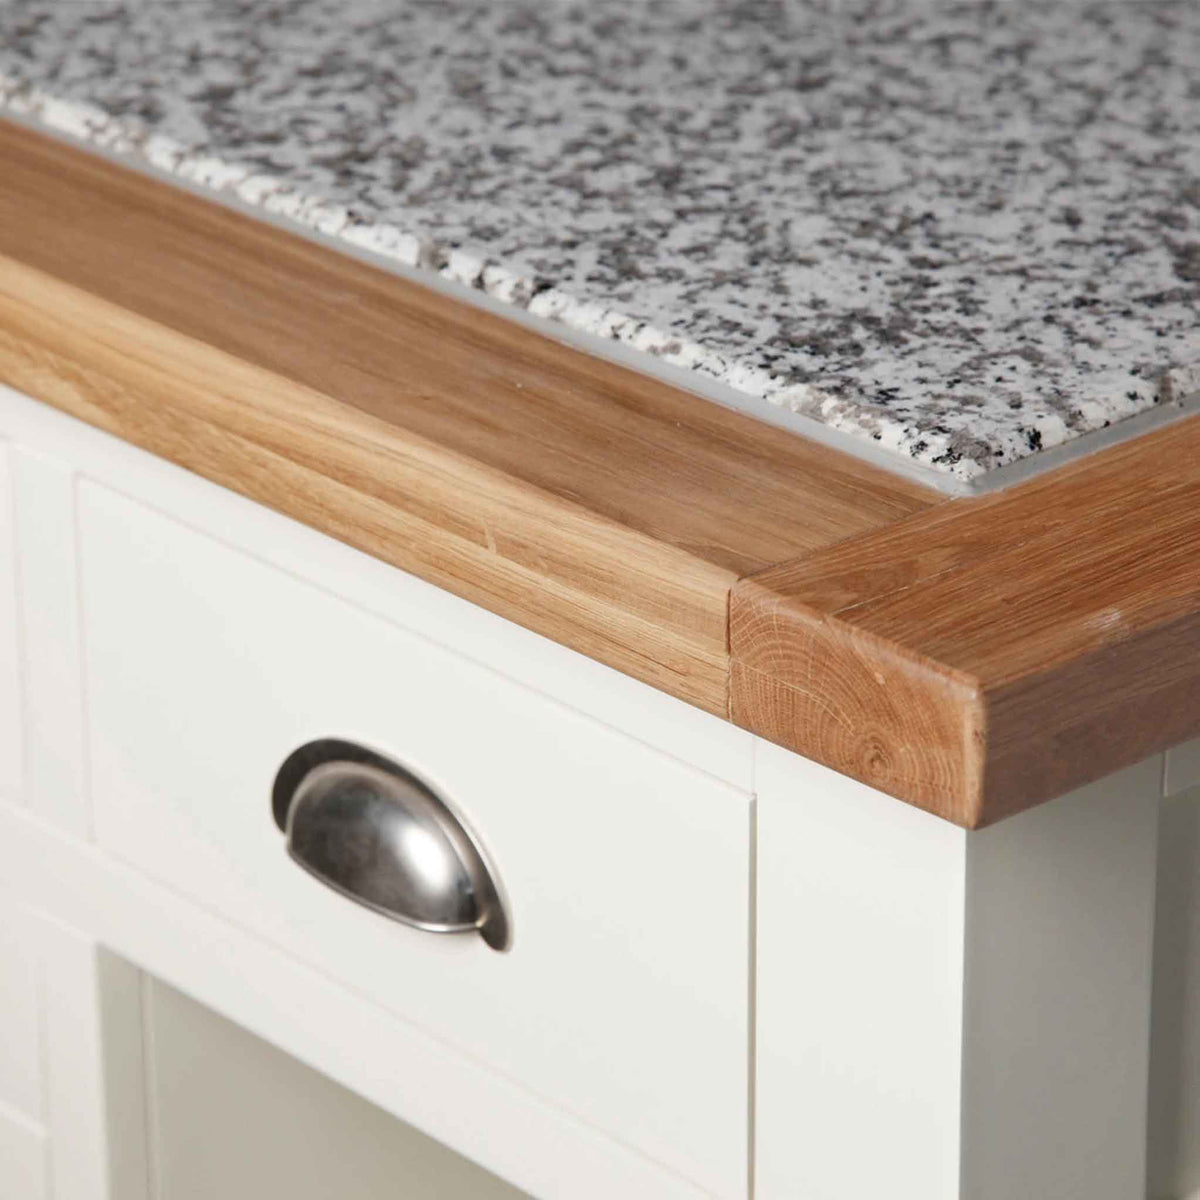 Corner of oak top on The Daymer Cream Oak Top Kitchen Island Breakfast Bar